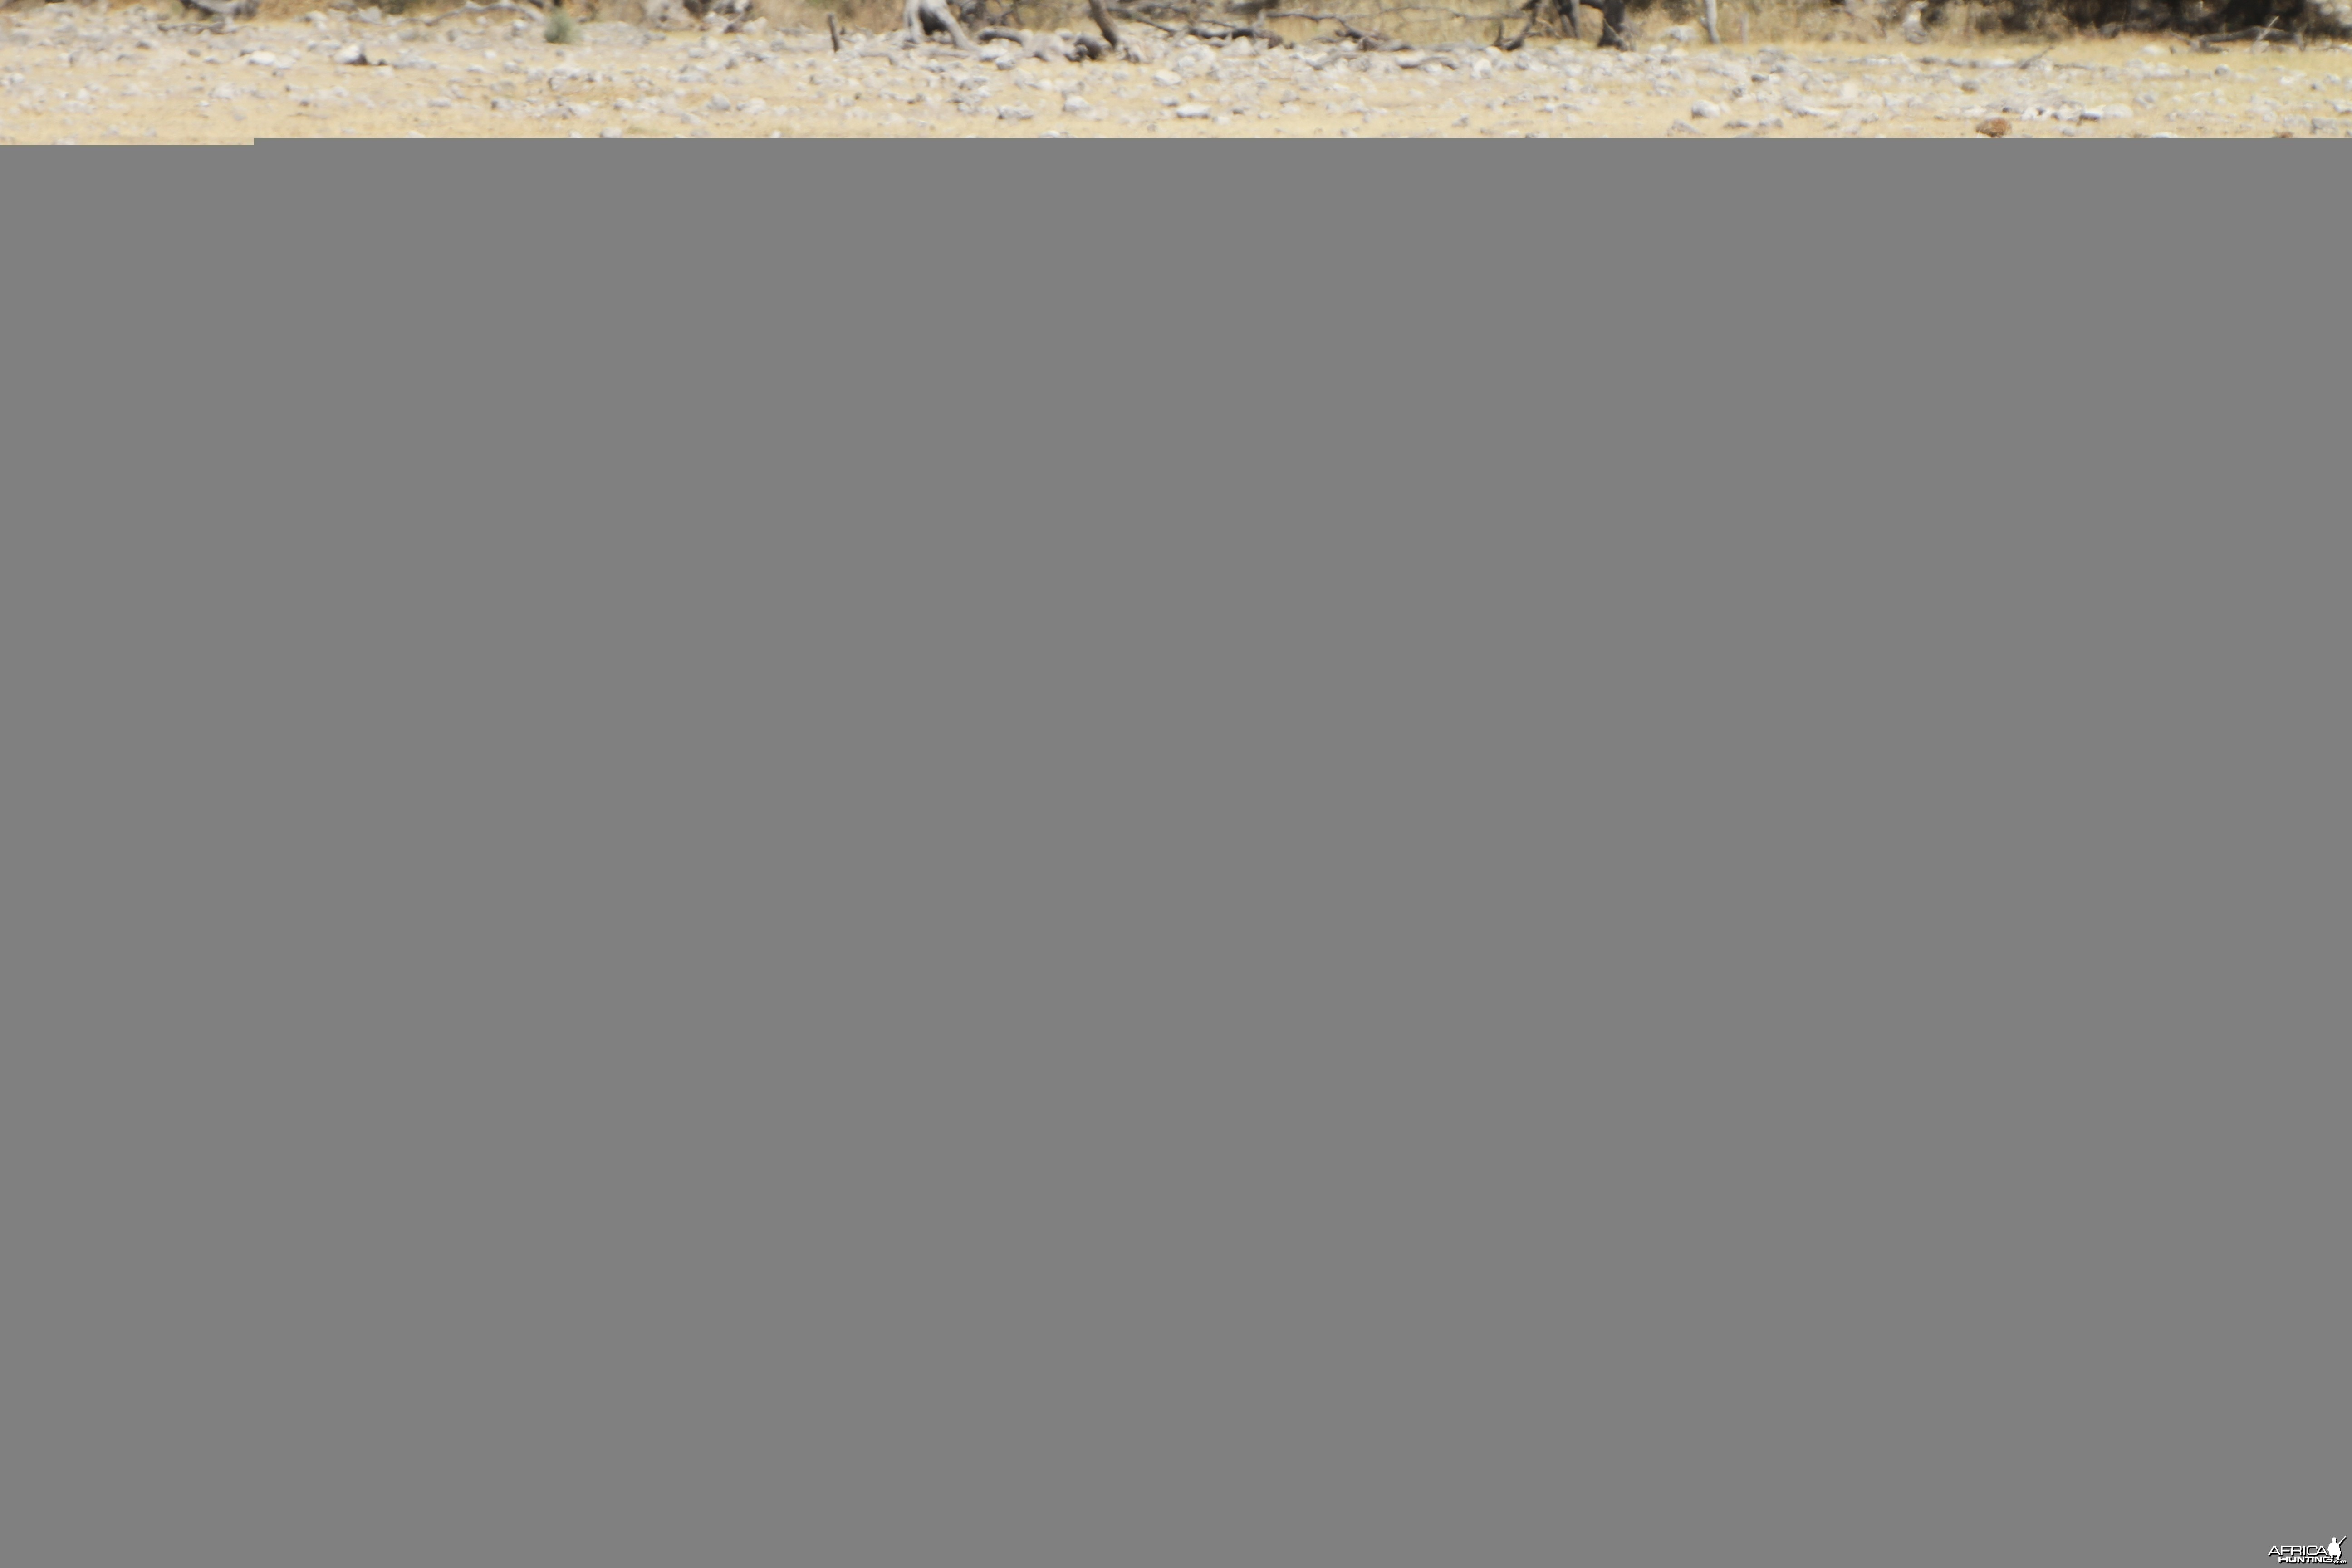 Cape Eland at Etosha National Park